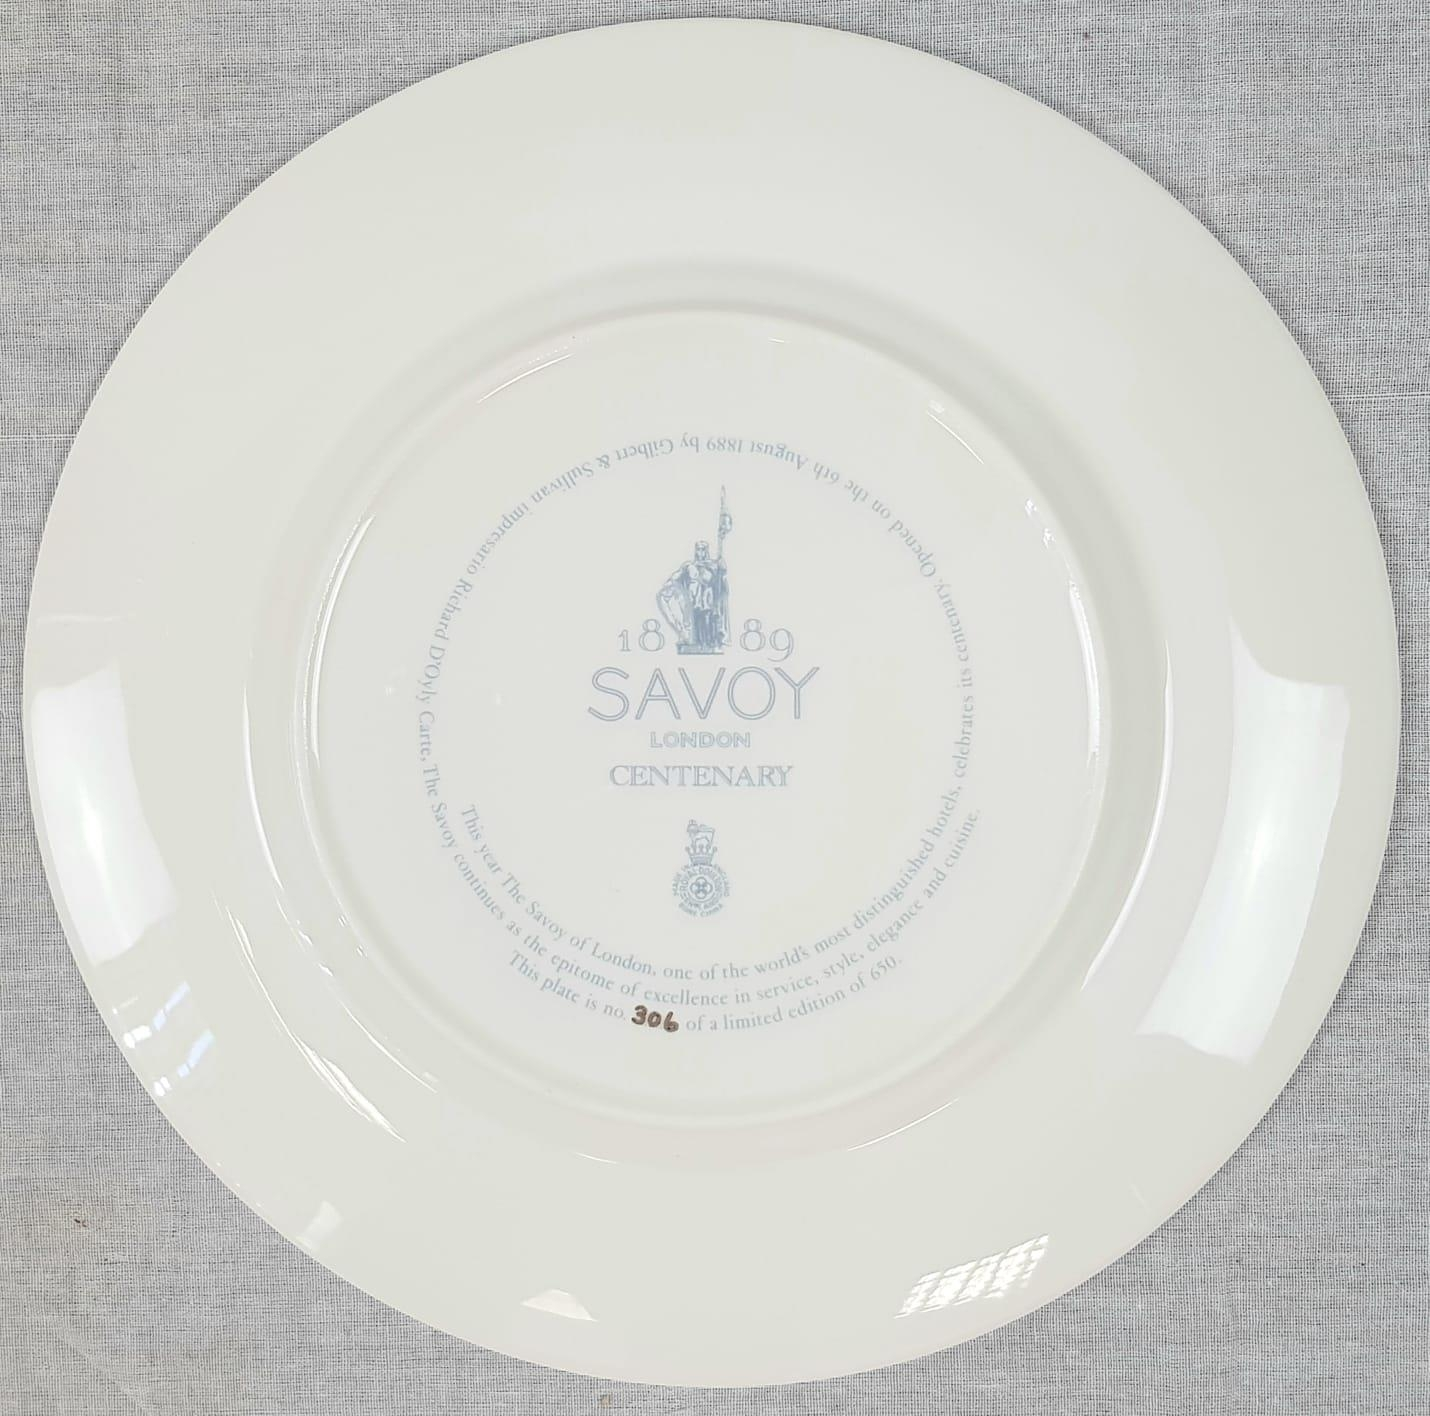 Limited Edition Royal Doulton Savoy Plate. Centenary edition. 1889-1989. 27cm diameter. As New, in - Image 3 of 4